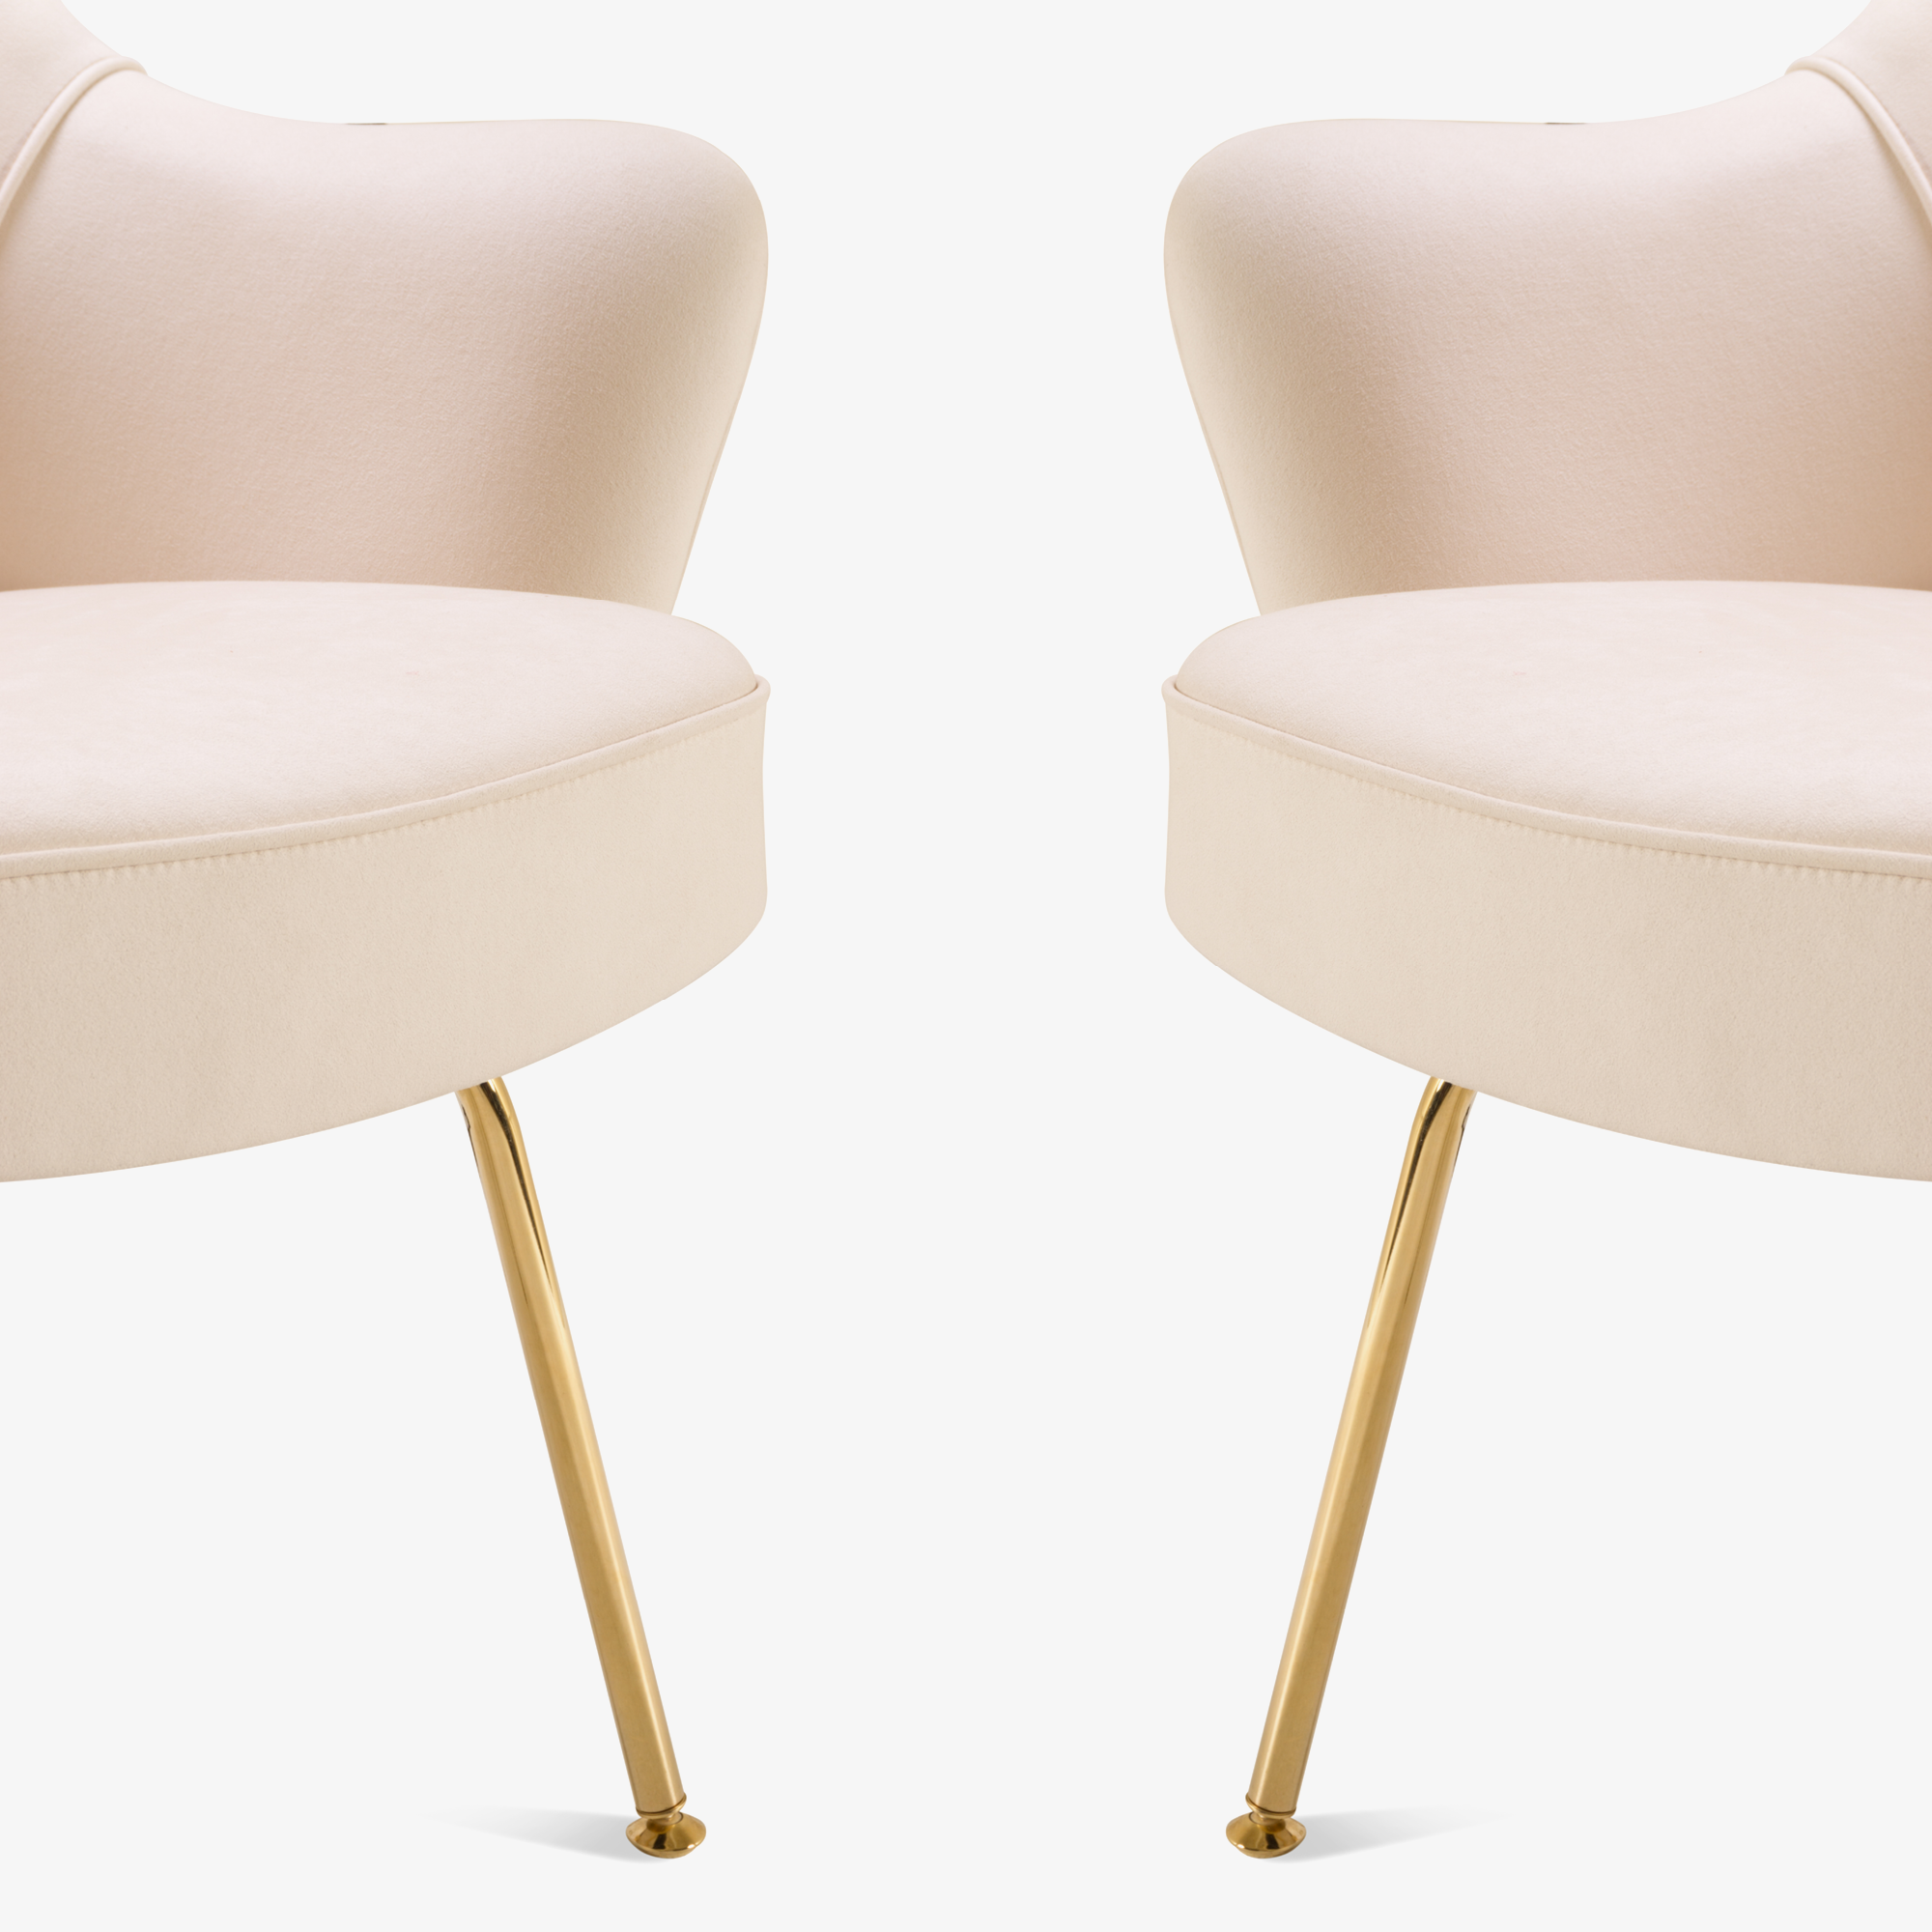 Saarinen Executive Arm Chairs In Bone Luxe Suede, 24k Gold Edition, Set Of 6